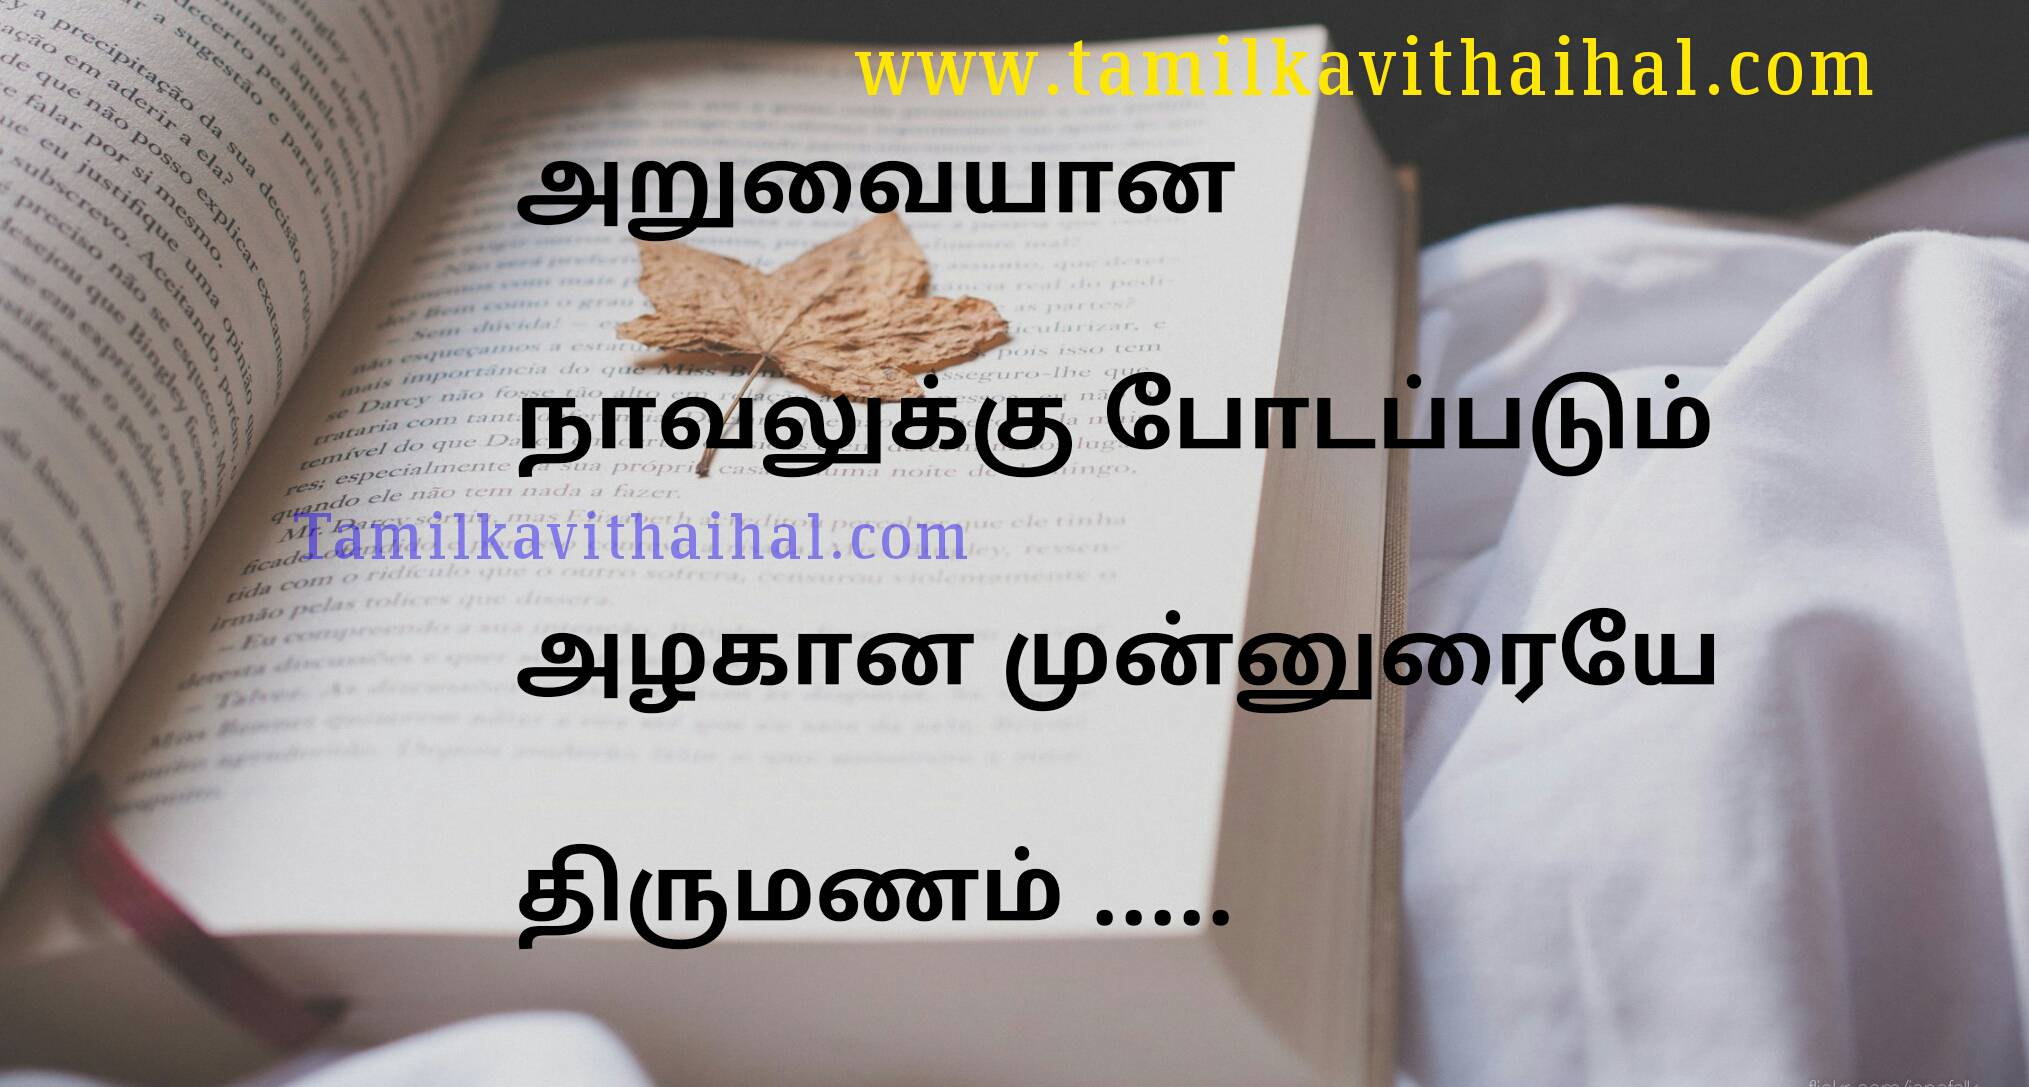 Funny Love And Arrenged Marriage Quotes Unhappy Kalyanam Life Status